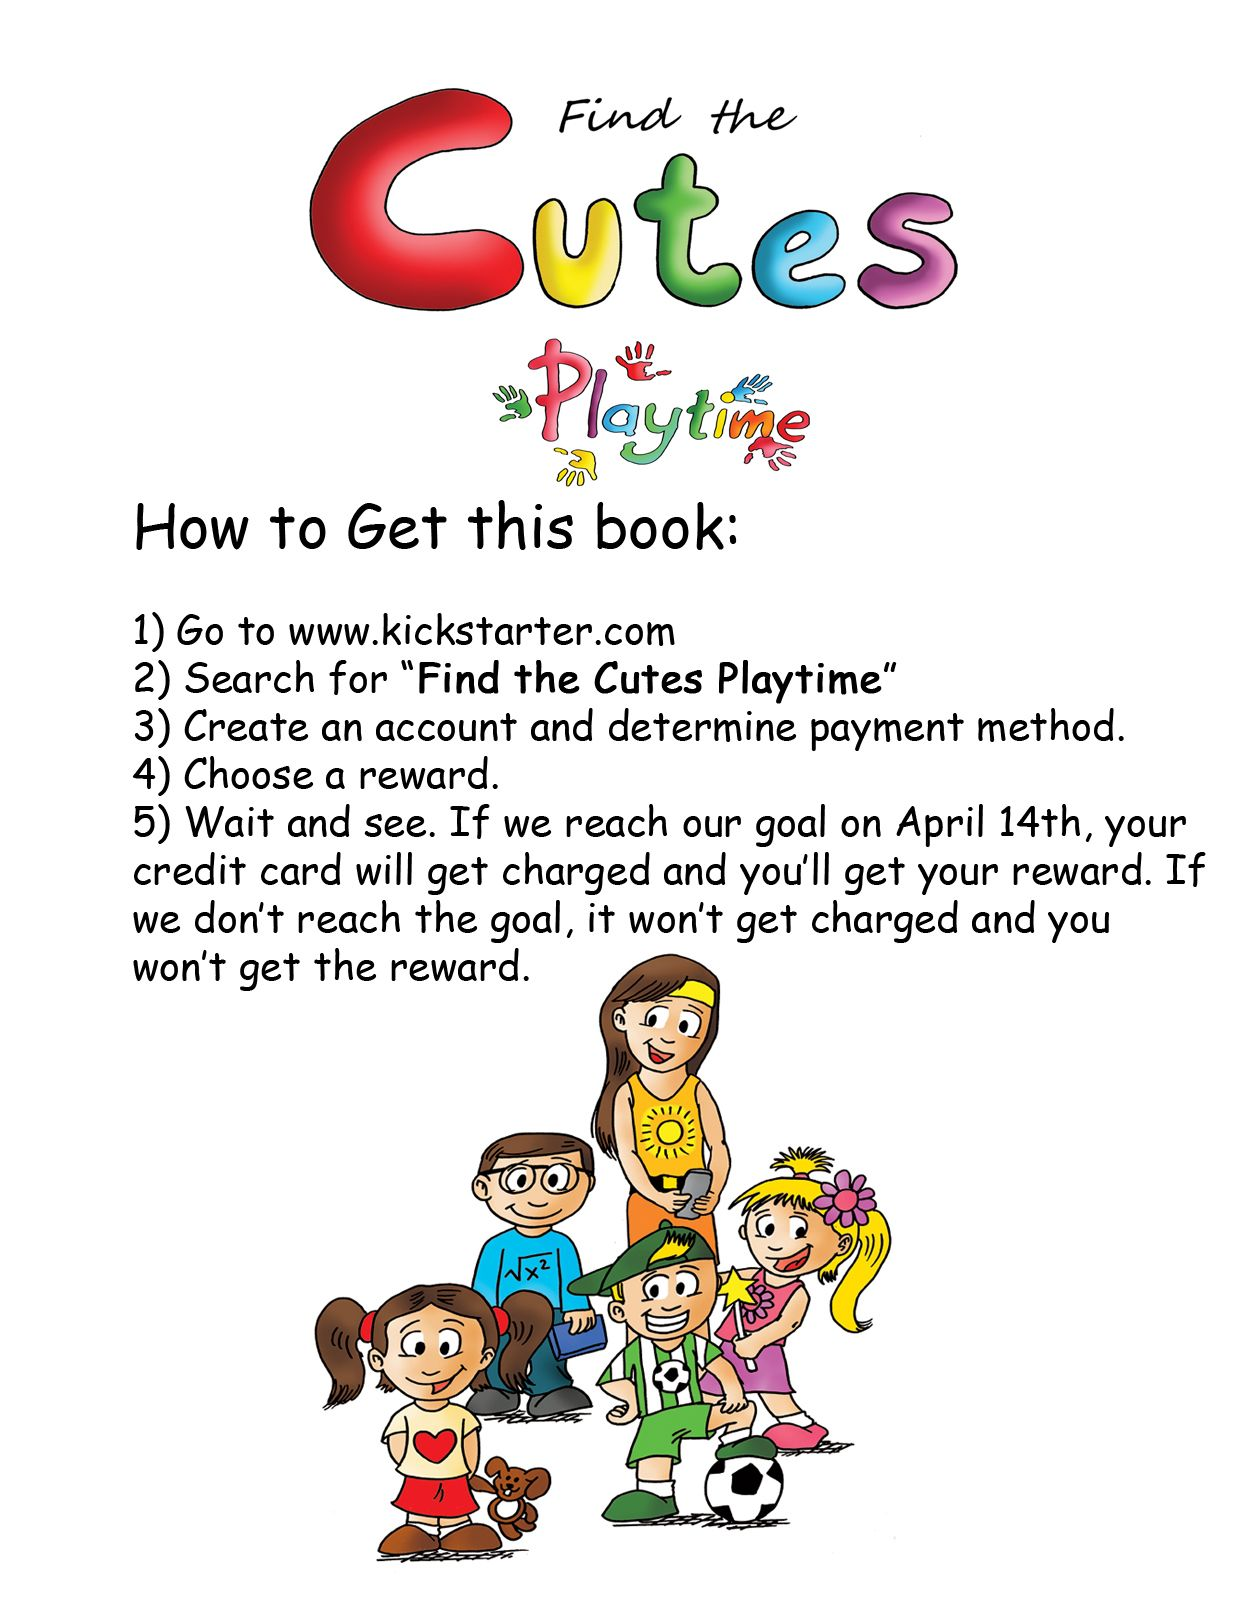 """Carissa, """"Hey y'all! The kickstarter project can be seen now! Back us and get a great reward! The book is awesome!""""  https://www.kickstarter.com/projects/92560380/find-the-cutes-playtime"""